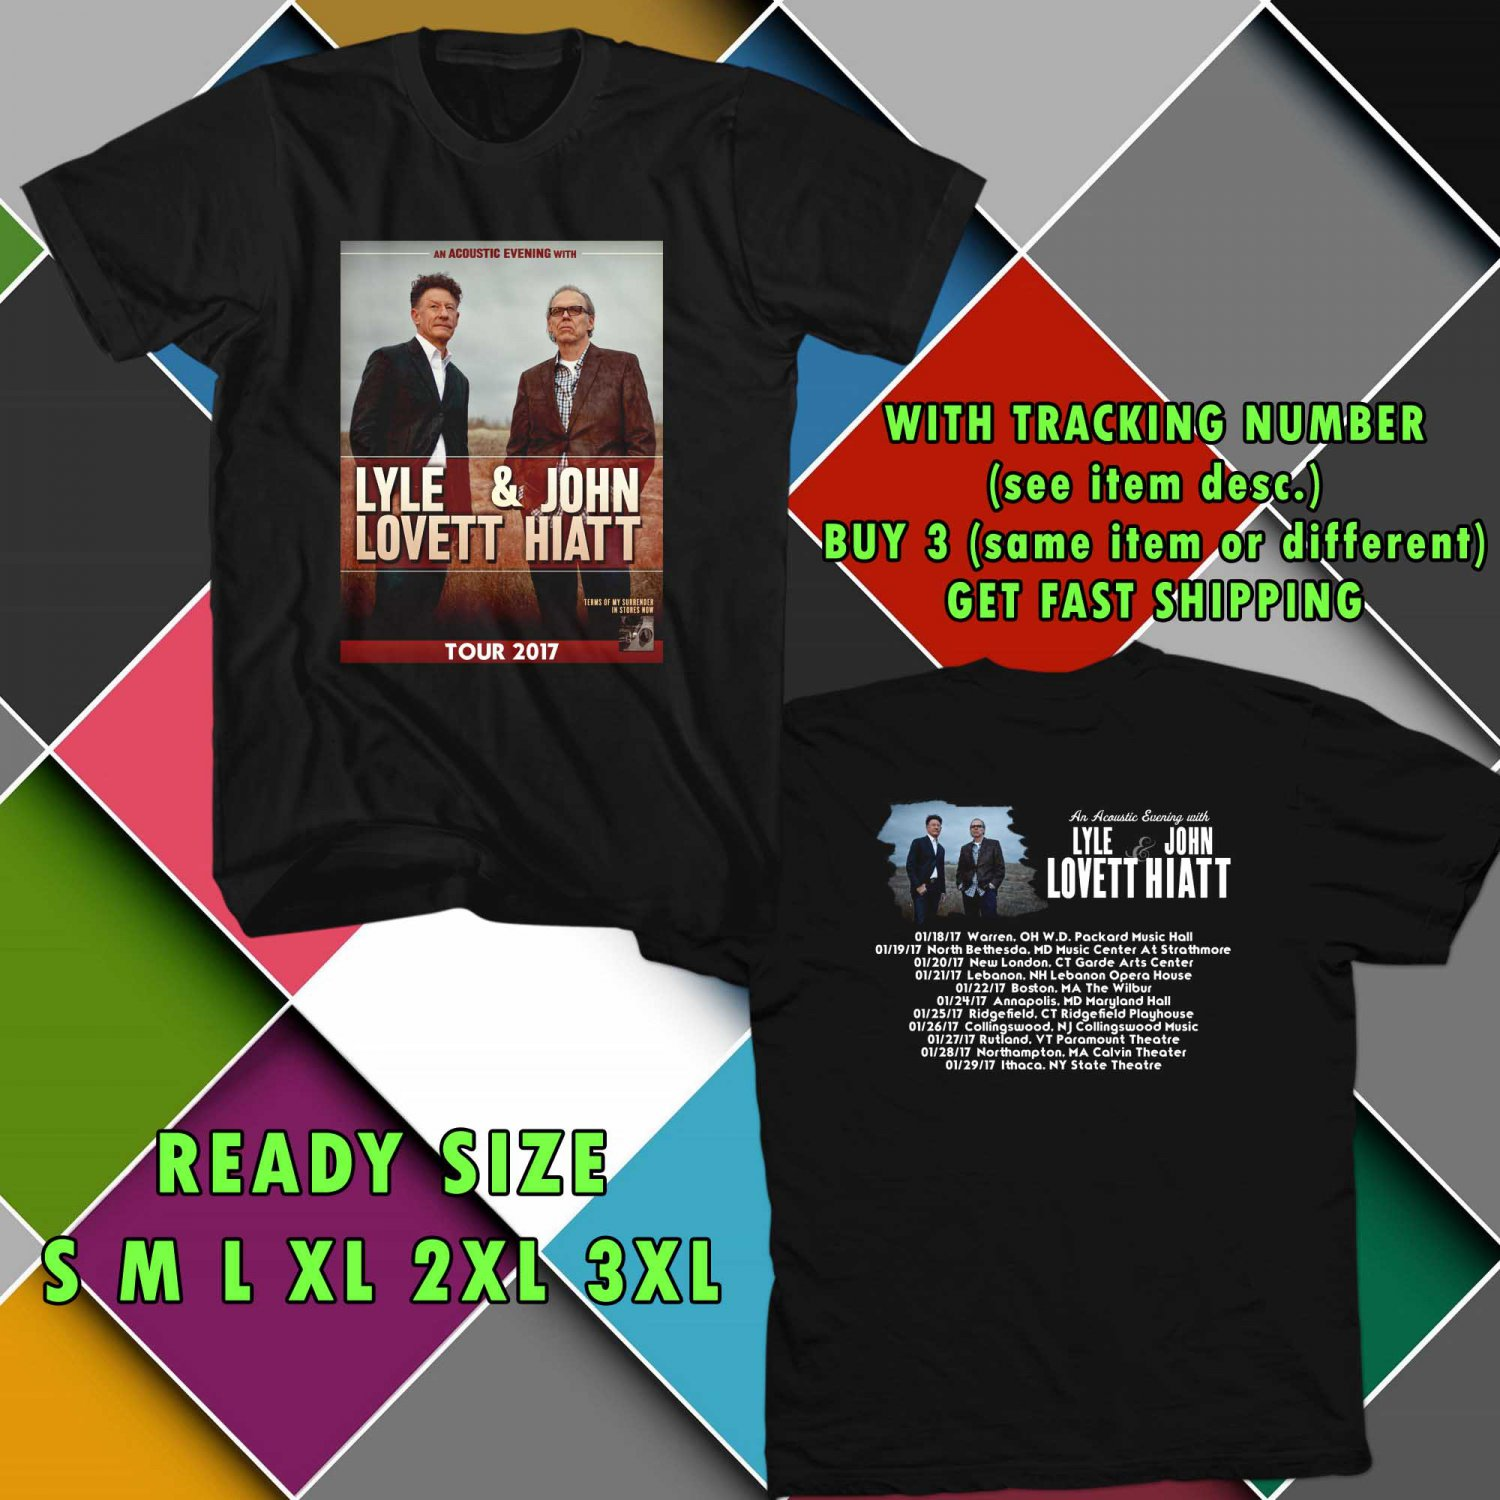 WOW LYLE LOVETT AND JOHN HIATT ACOUSTIC TOUR 2017 BLACK TEE S-3XL ASTR